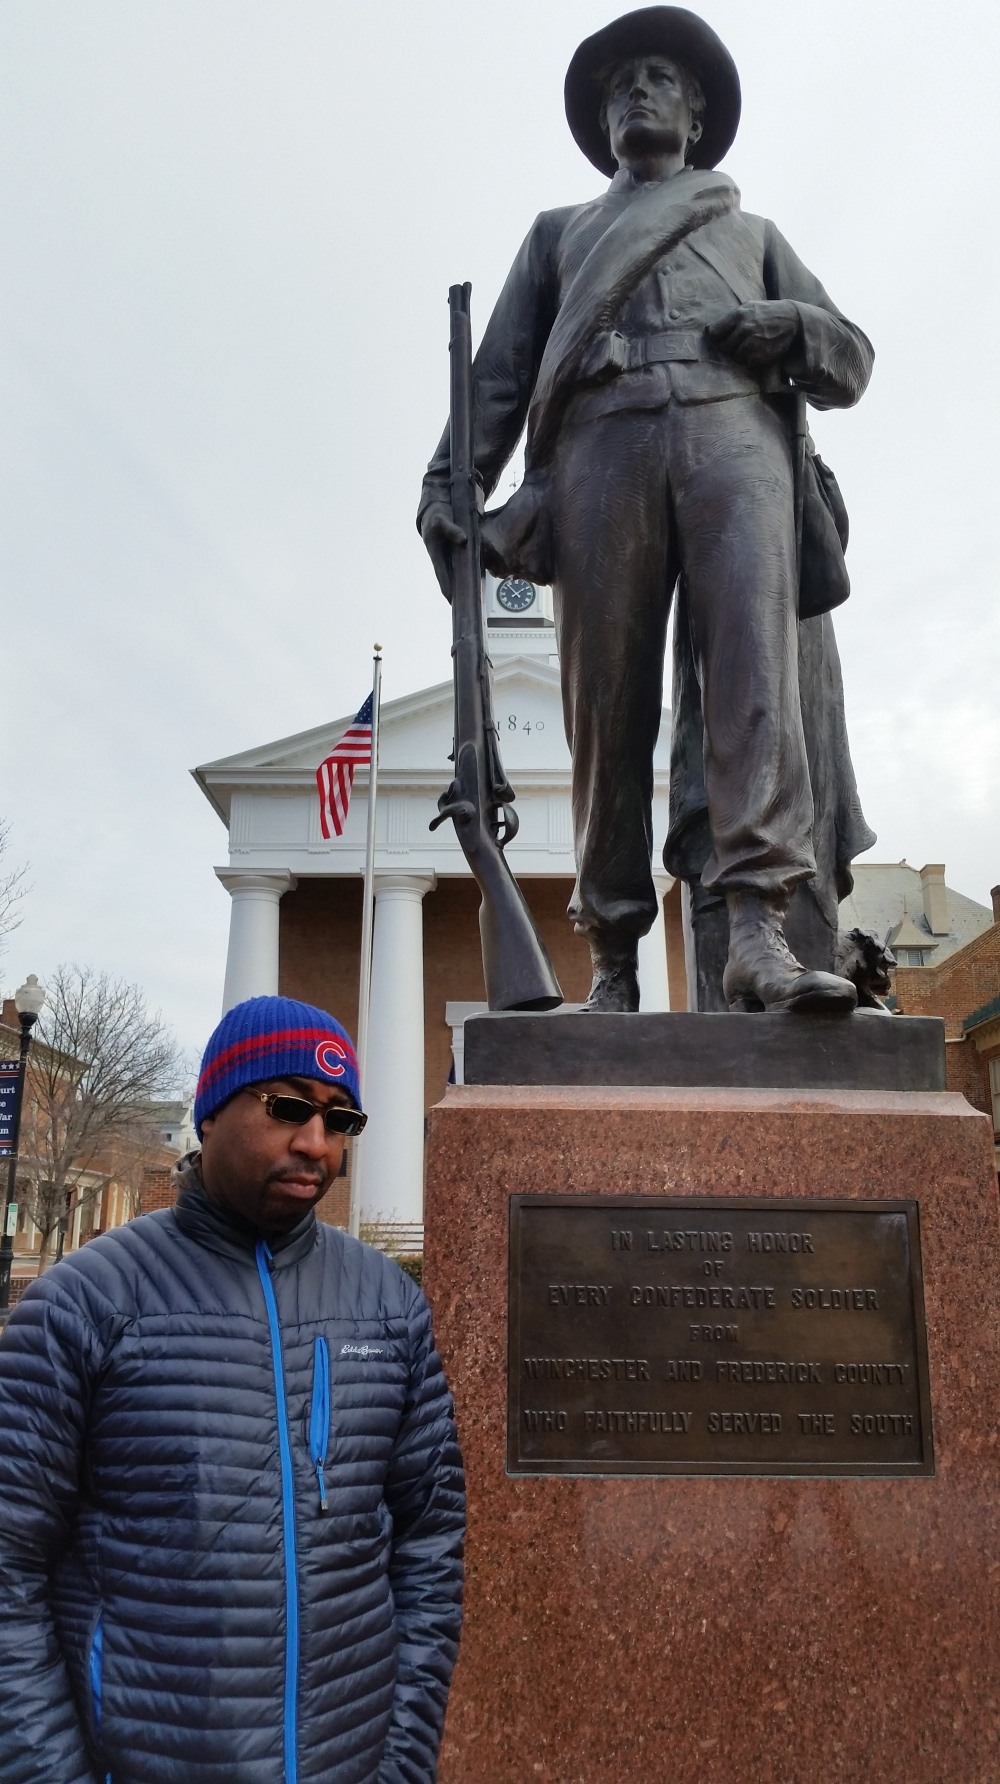 Me taking in some Civil War history outside of the Old Courthouse Museum in Winchester, Va